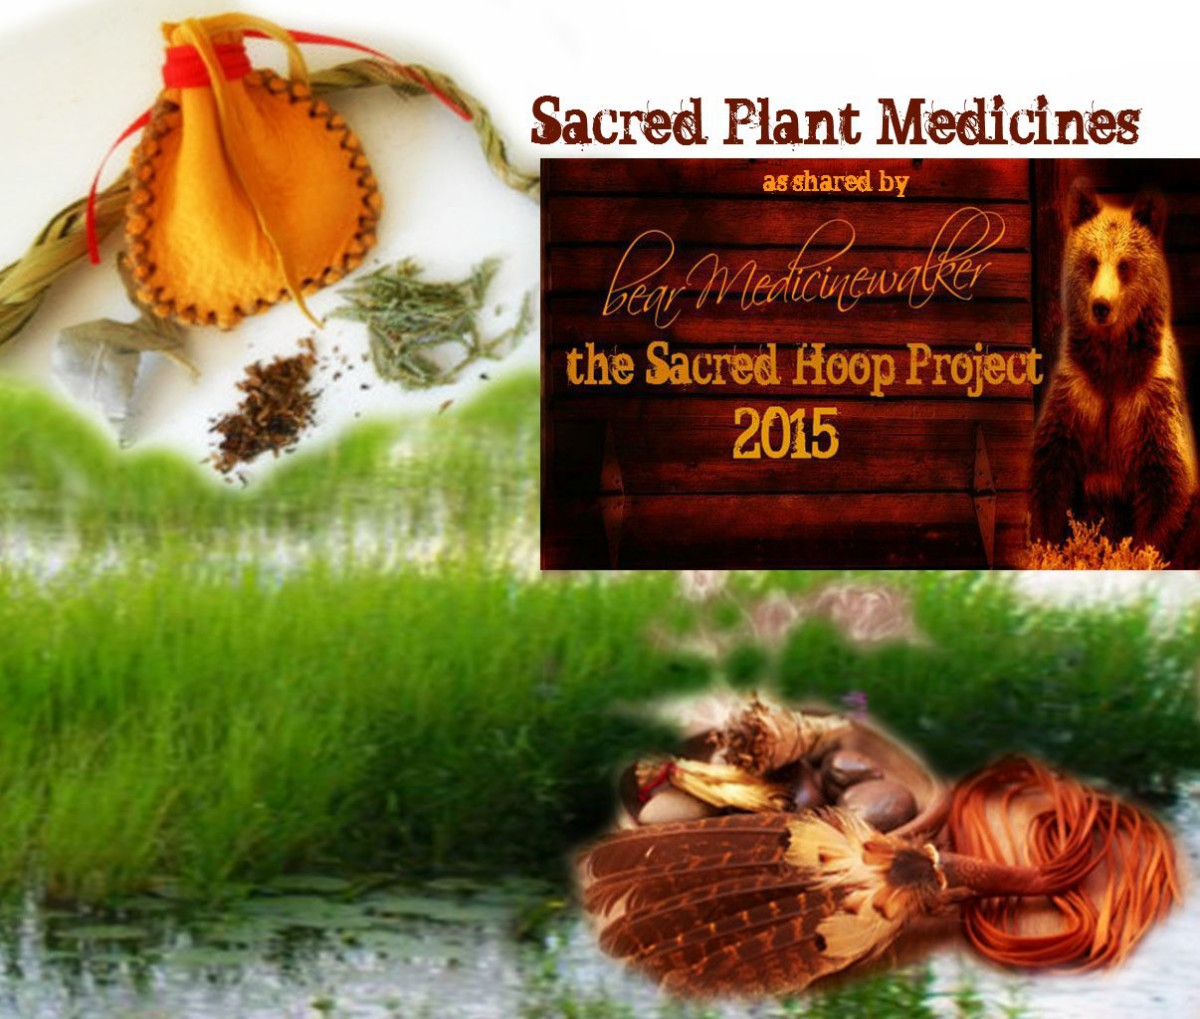 Sacred Plant Medicines as shared by bear Medicinewalker